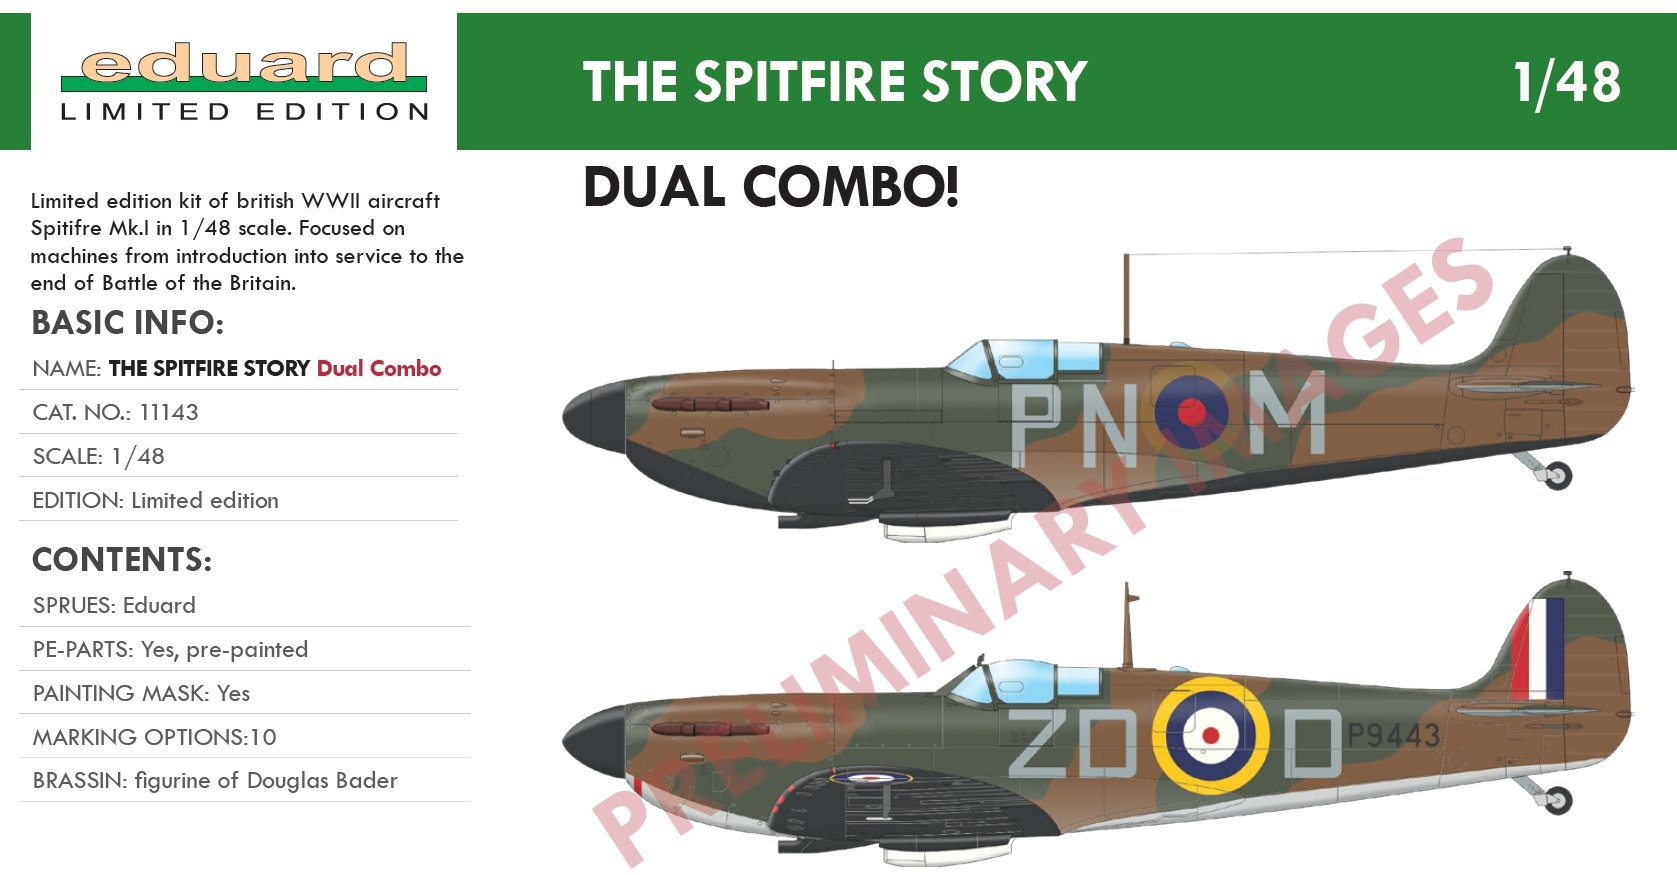 1:48 The Spitfire Story (Spitifre Mk.I) (for Limited edition kit